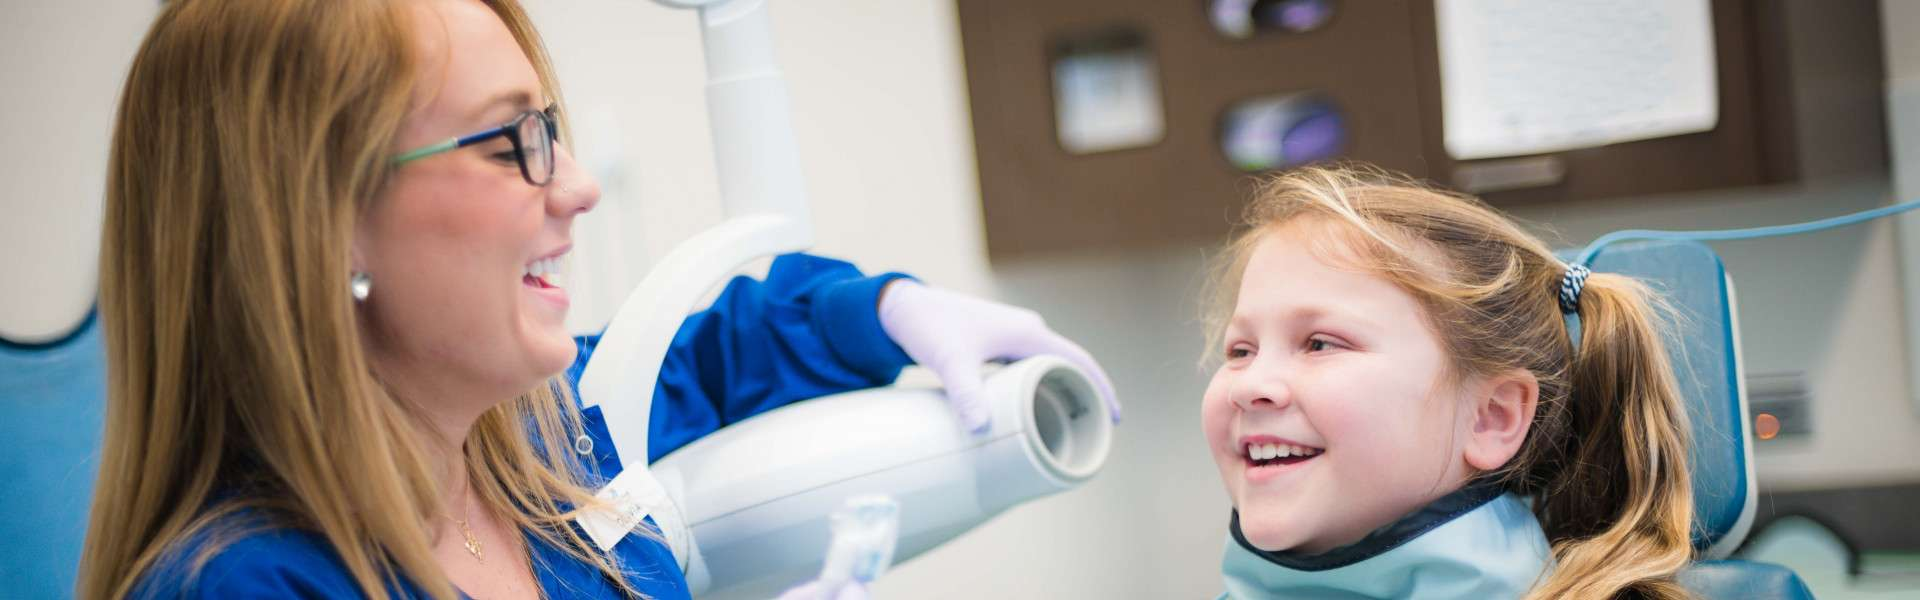 Dental Assistant taking X-rays of young patient